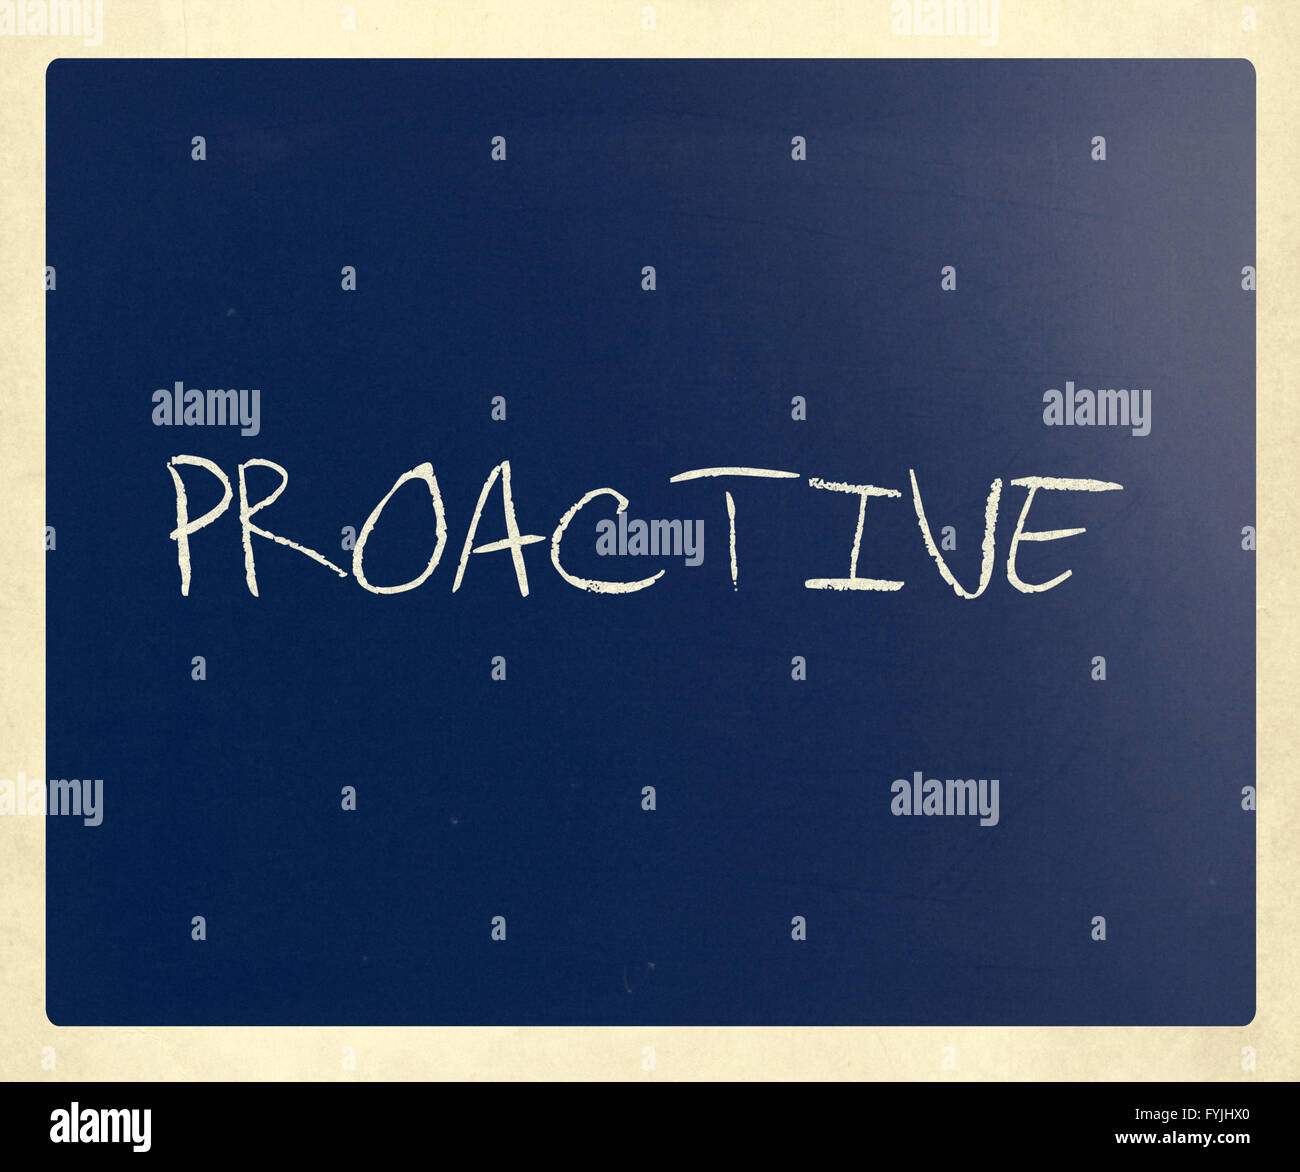 The word 'Proactive' handwritten with white chalk on a blackboard - Stock Image